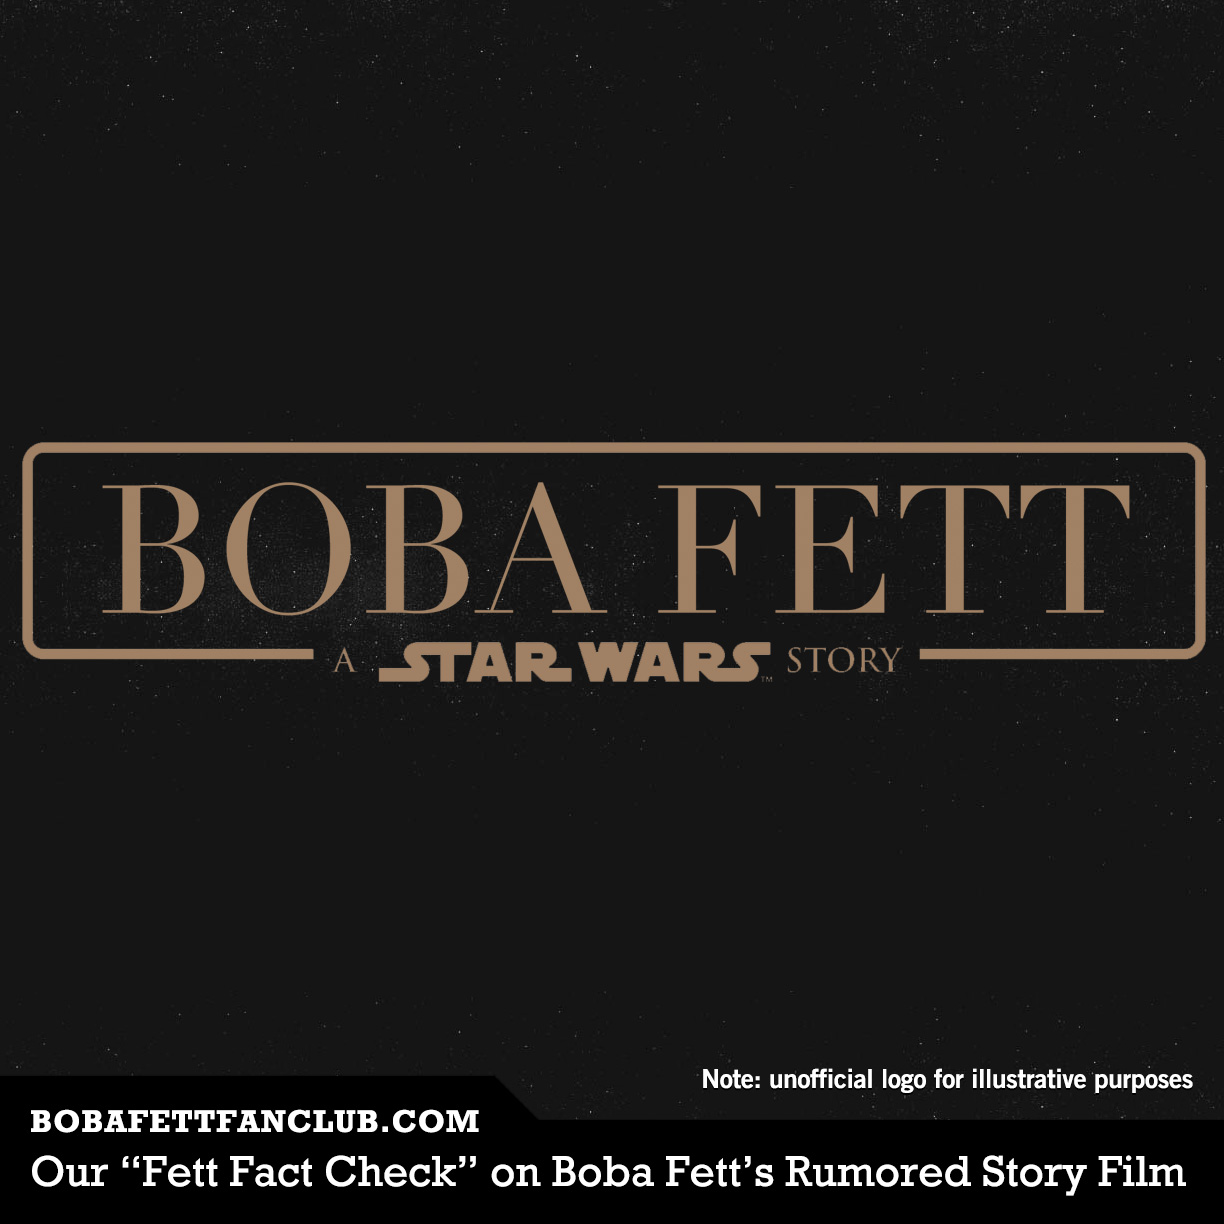 Star Wars Story Film(s)